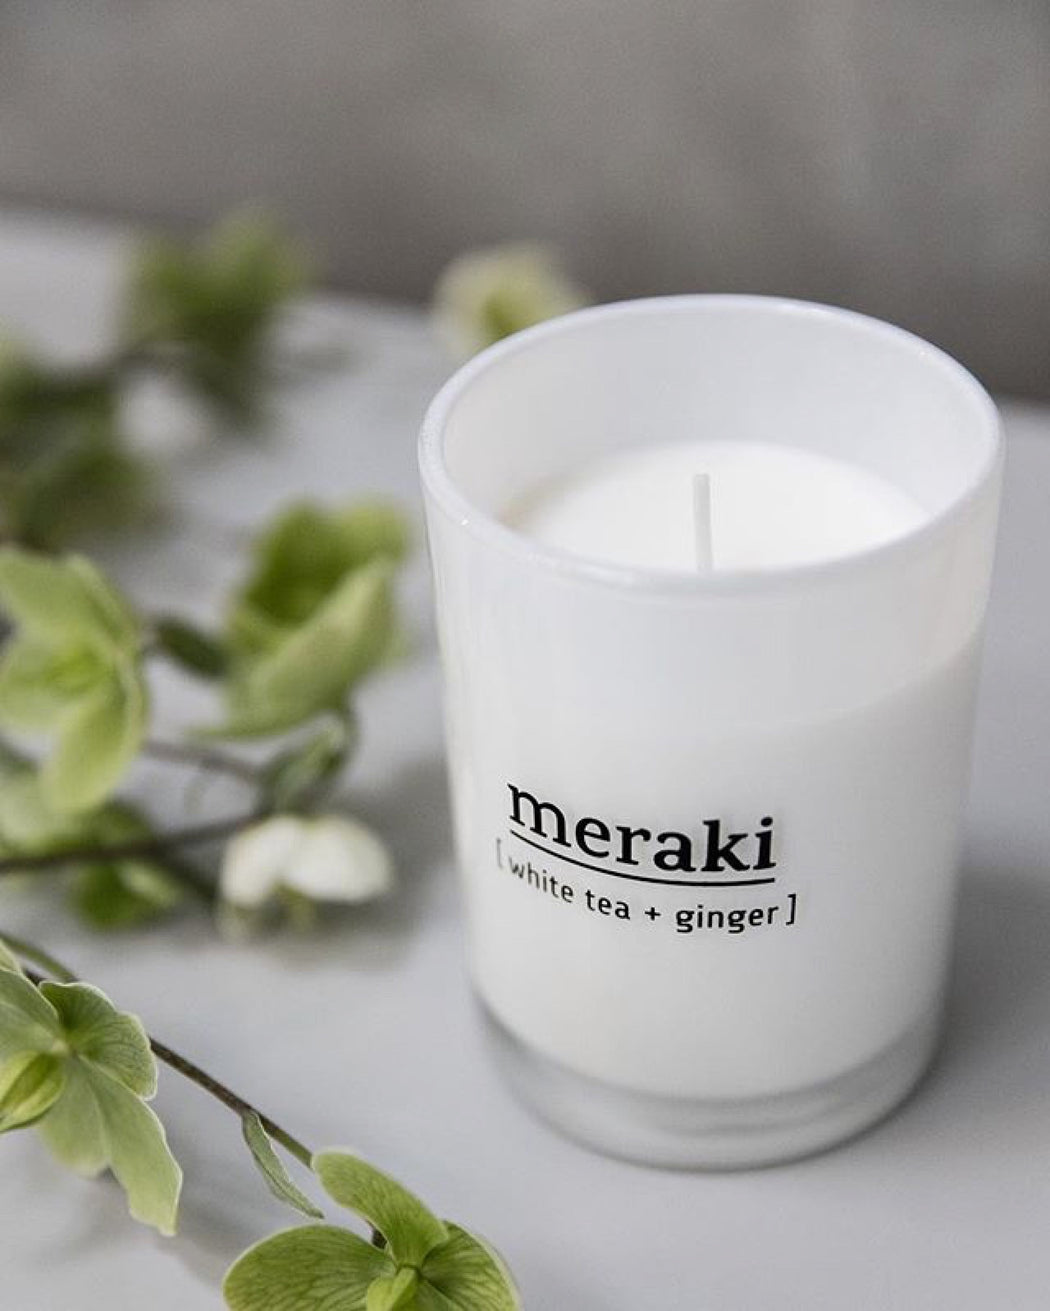 White Tea And Ginger Scented Candle, Lifestyle, Meraki - 3LittlePicks